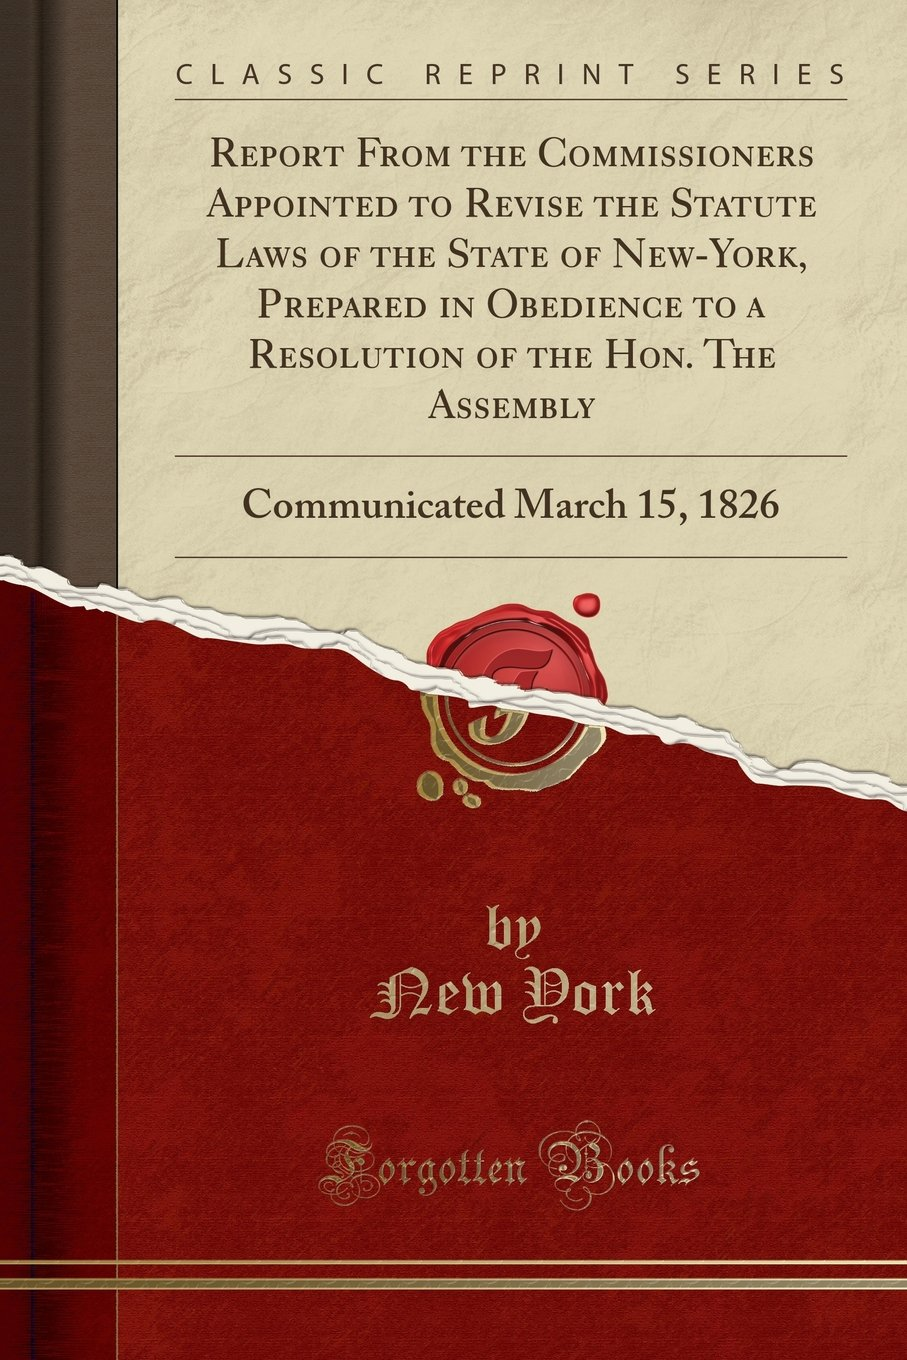 Download Report From the Commissioners Appointed to Revise the Statute Laws of the State of New-York, Prepared in Obedience to a Resolution of the Hon. The ... Communicated March 15, 1826 (Classic Reprint) pdf